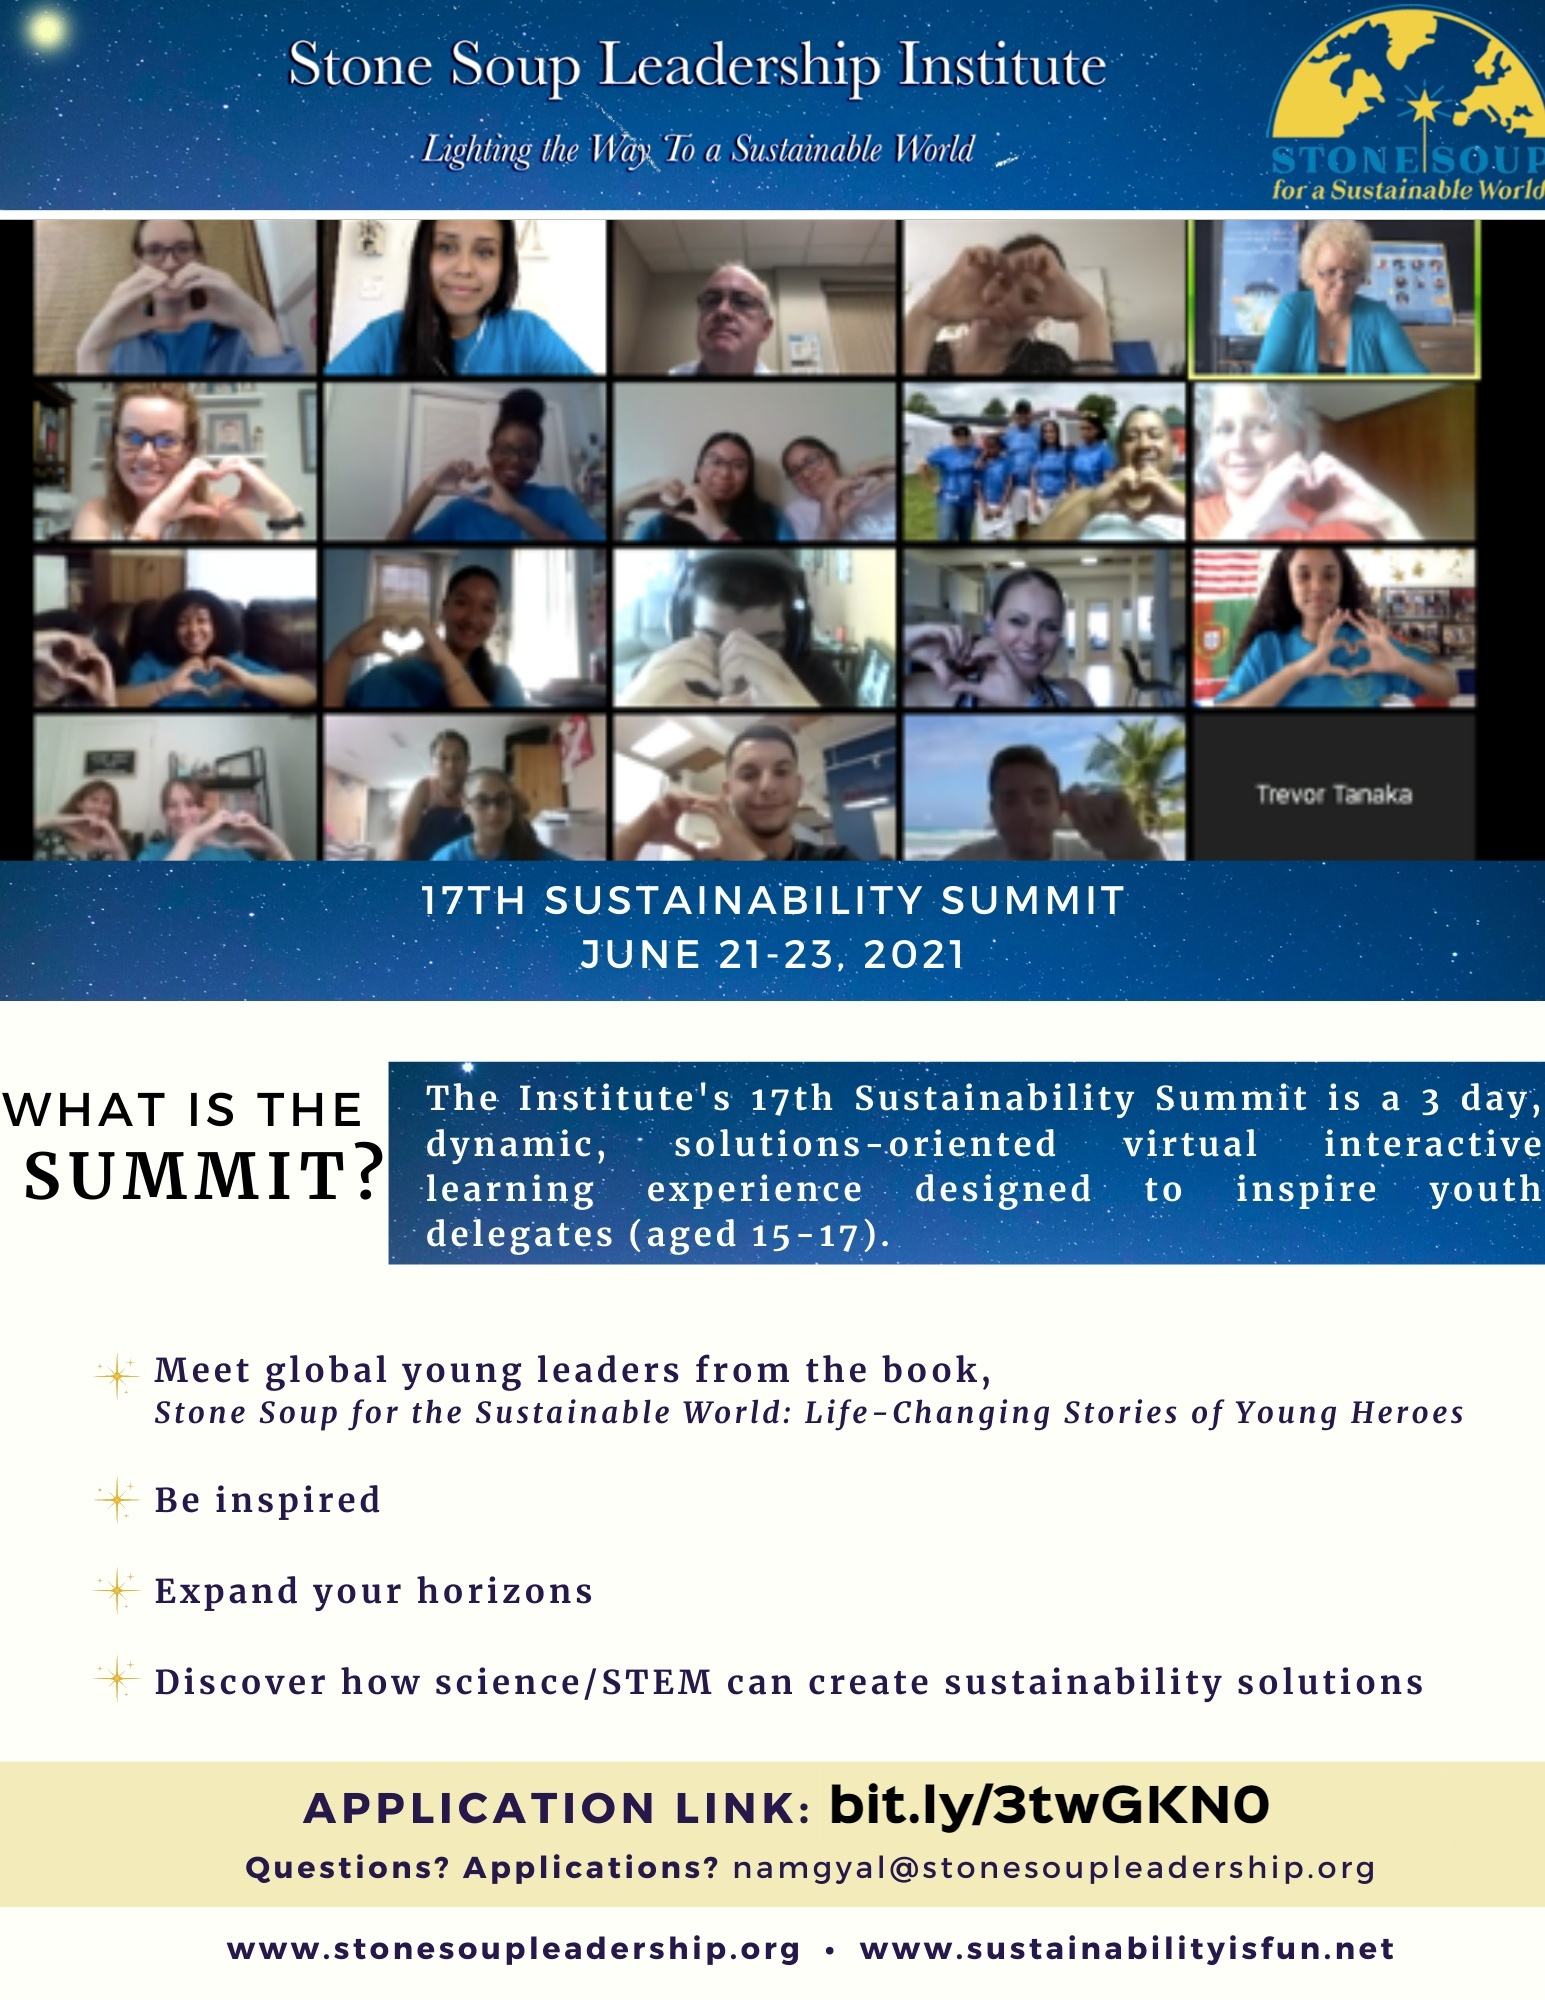 Summit Flyer for the 17th Sustainability Summit with images of youth delegates